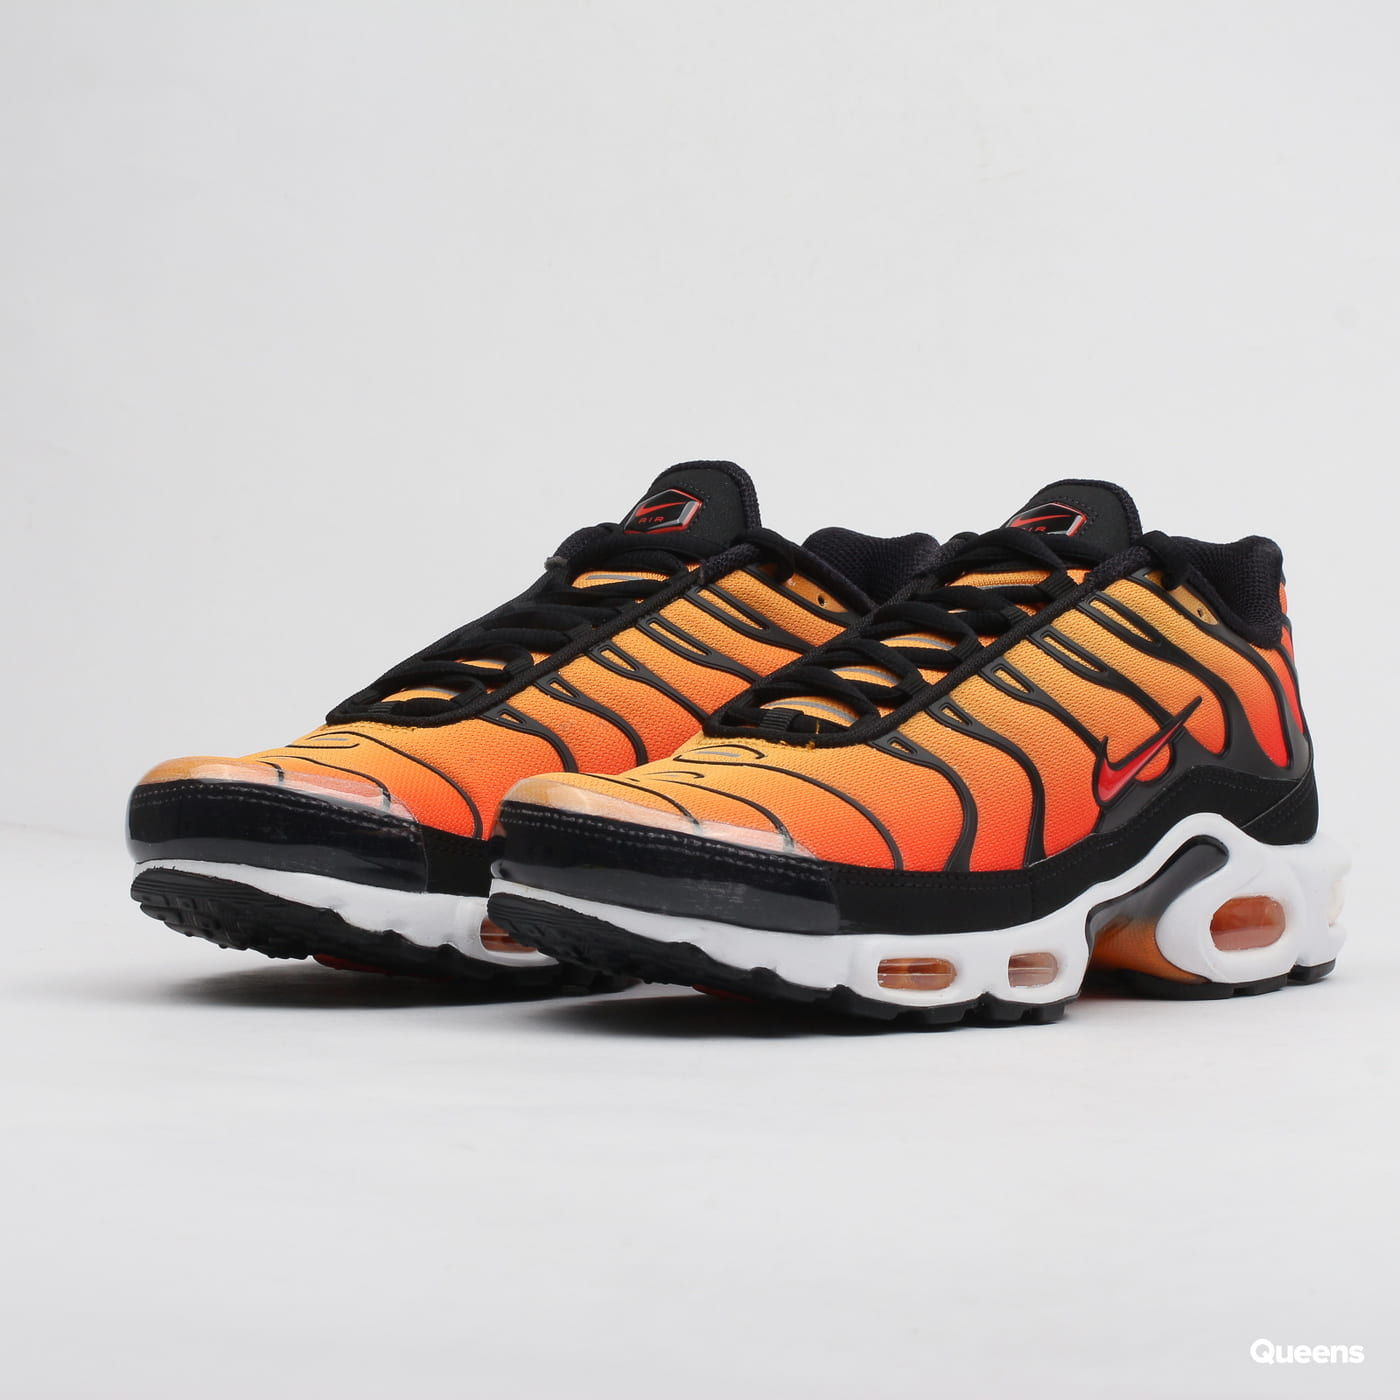 Nike AIR MAX PLUS Sort Hvid 852630 Rezet Store